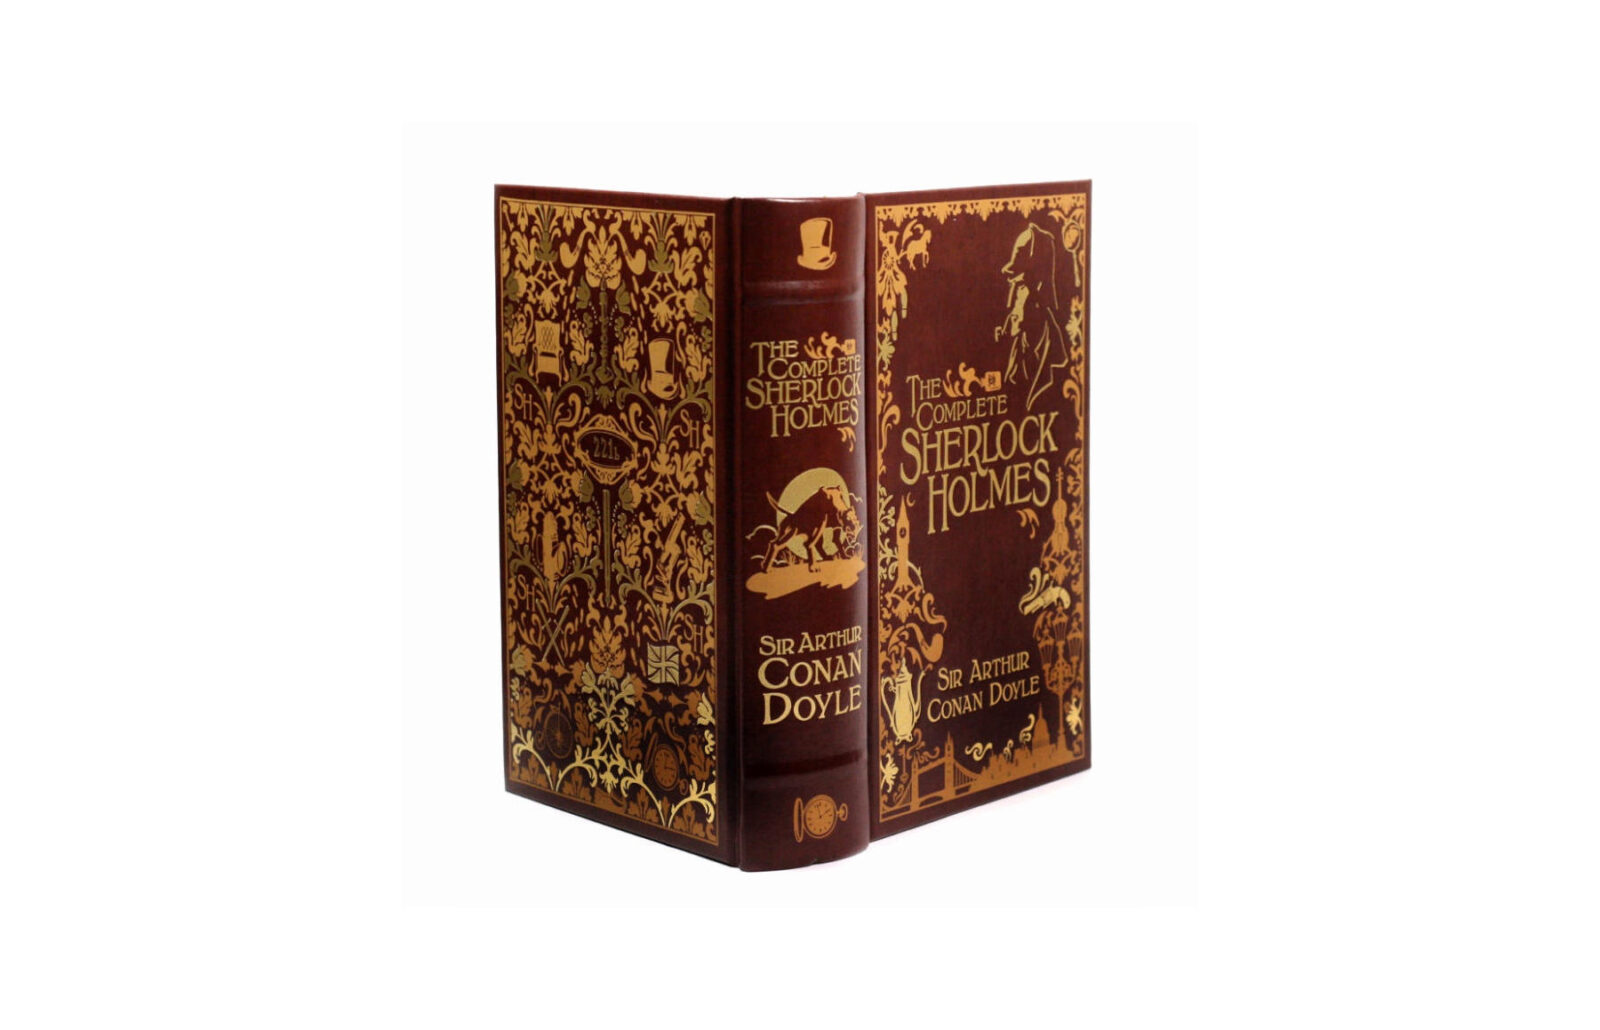 Hollow Security Book Safe 1600x1030 - Sherlock Holmes Hollow Security Book